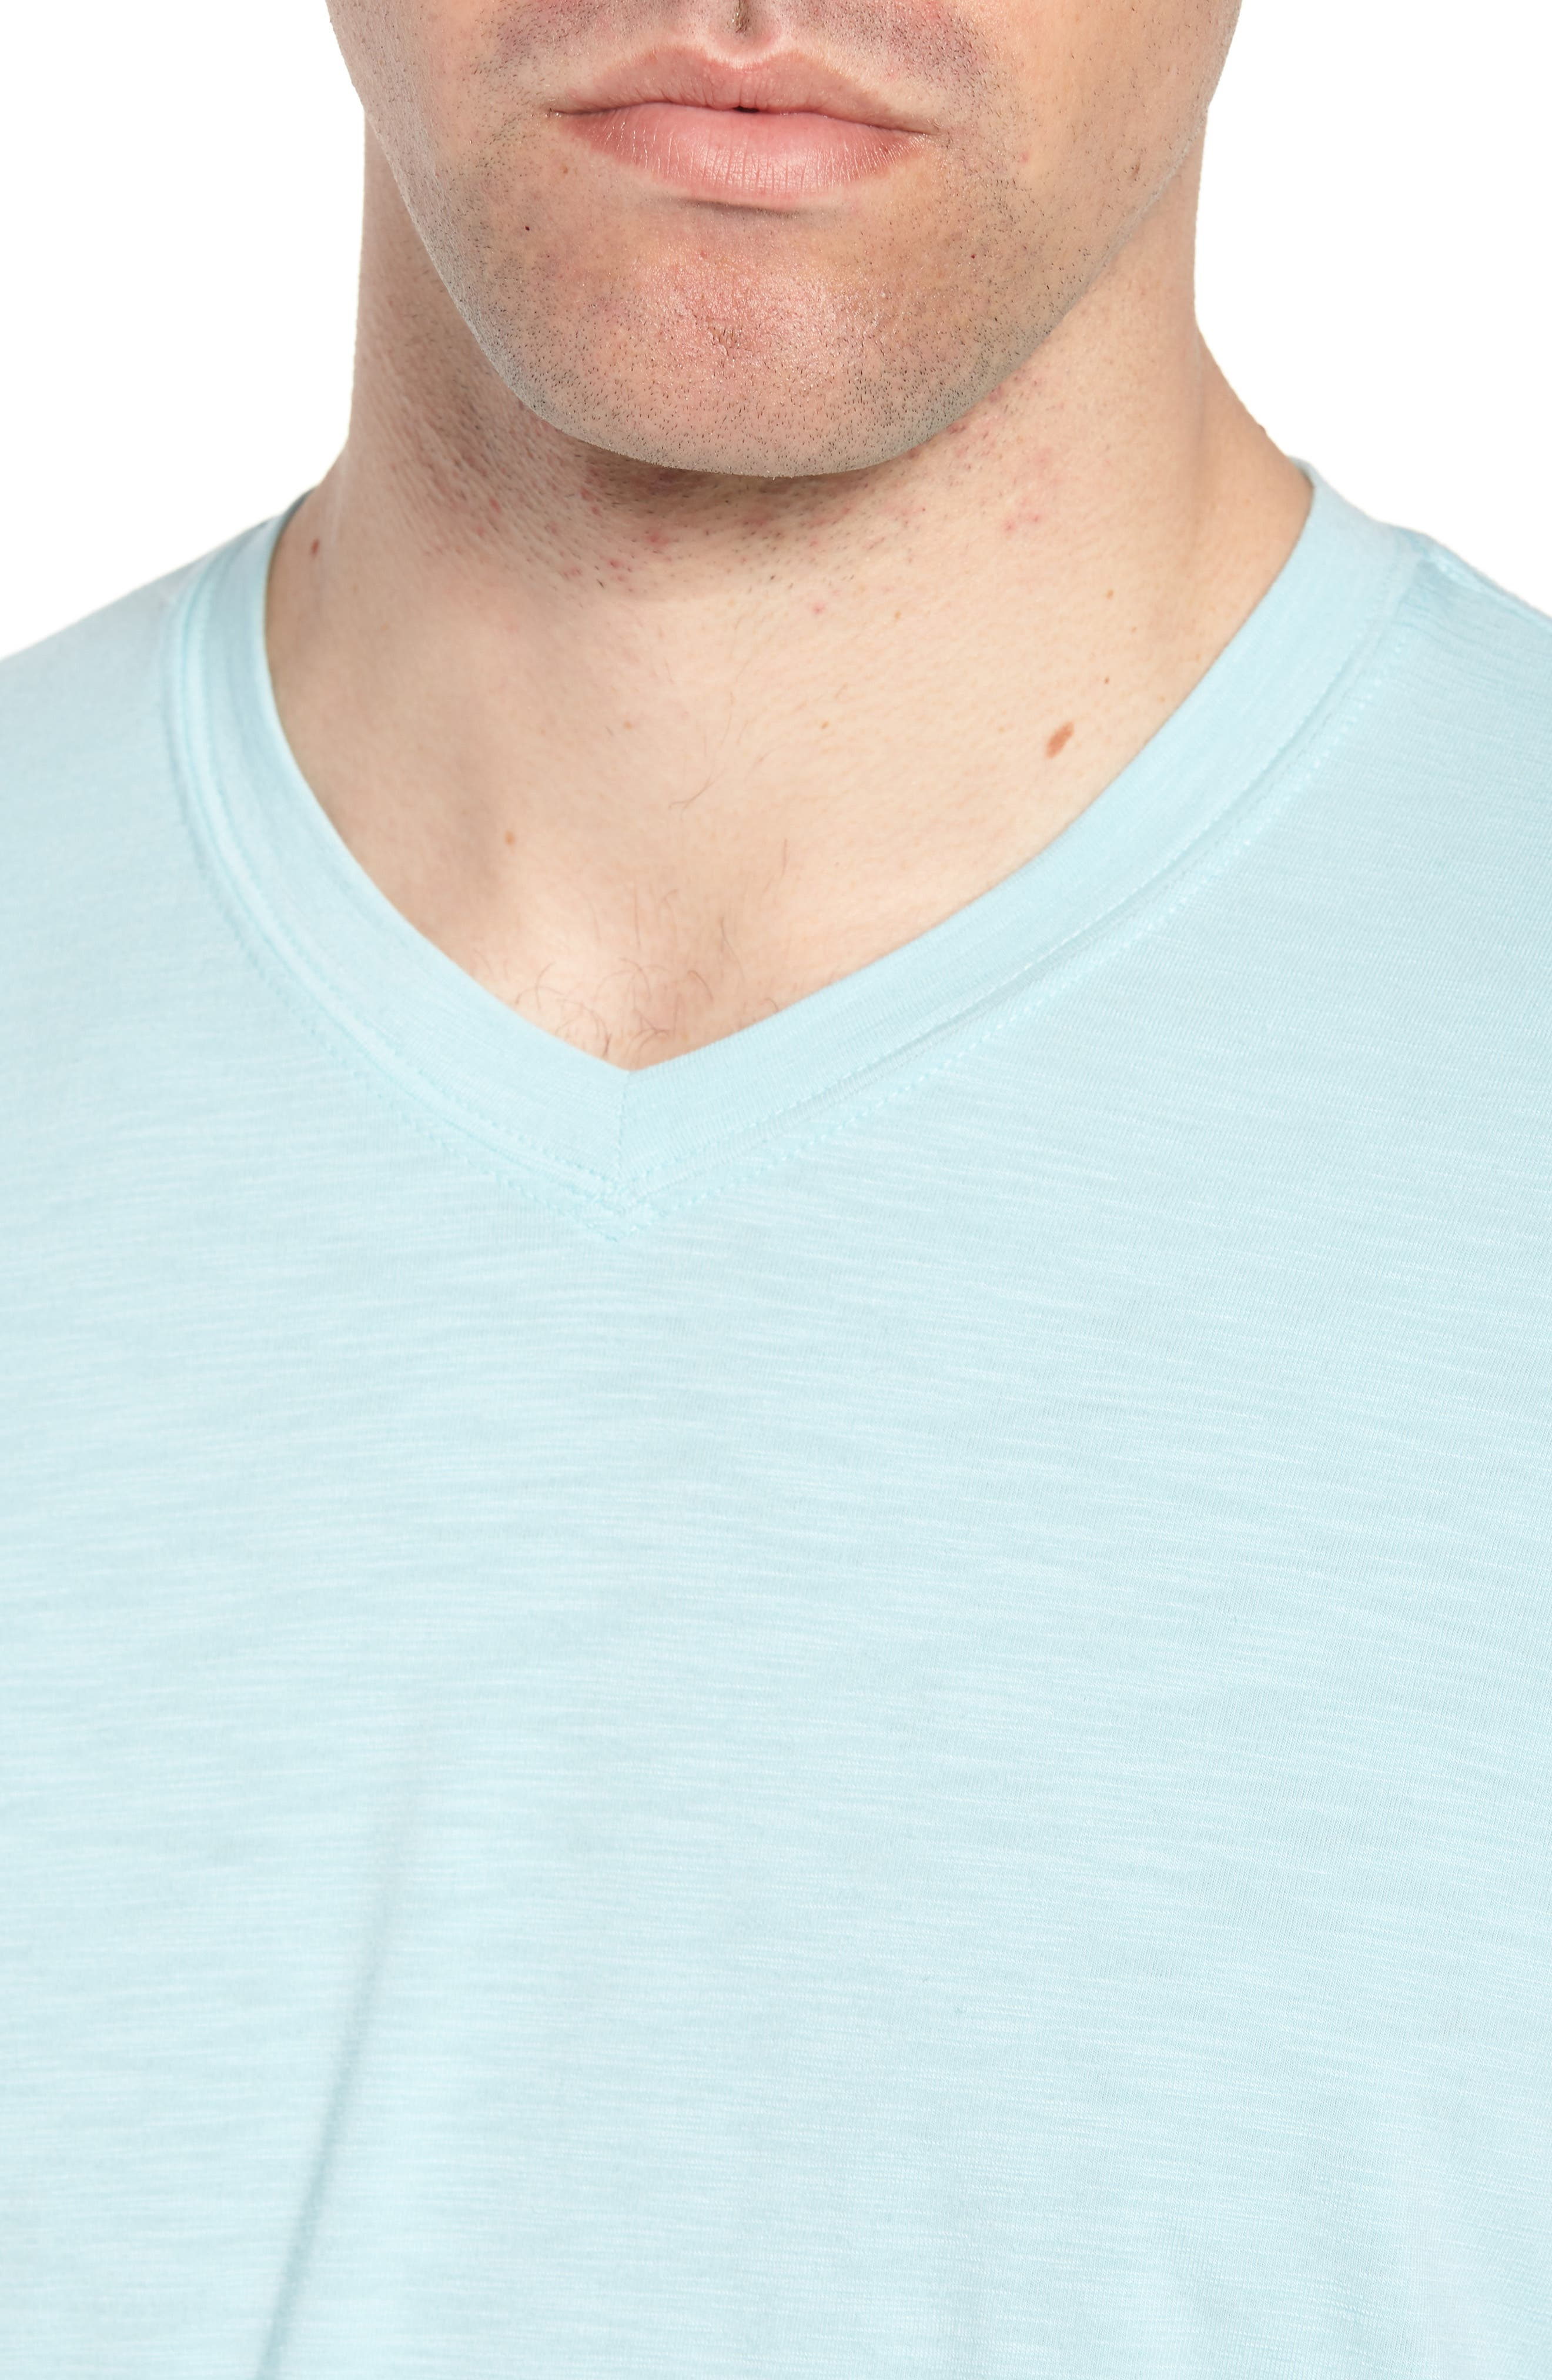 'Trumbull' Trim Fit Slubbed T-Shirt,                             Alternate thumbnail 4, color,                             PORCELAIN BLUE